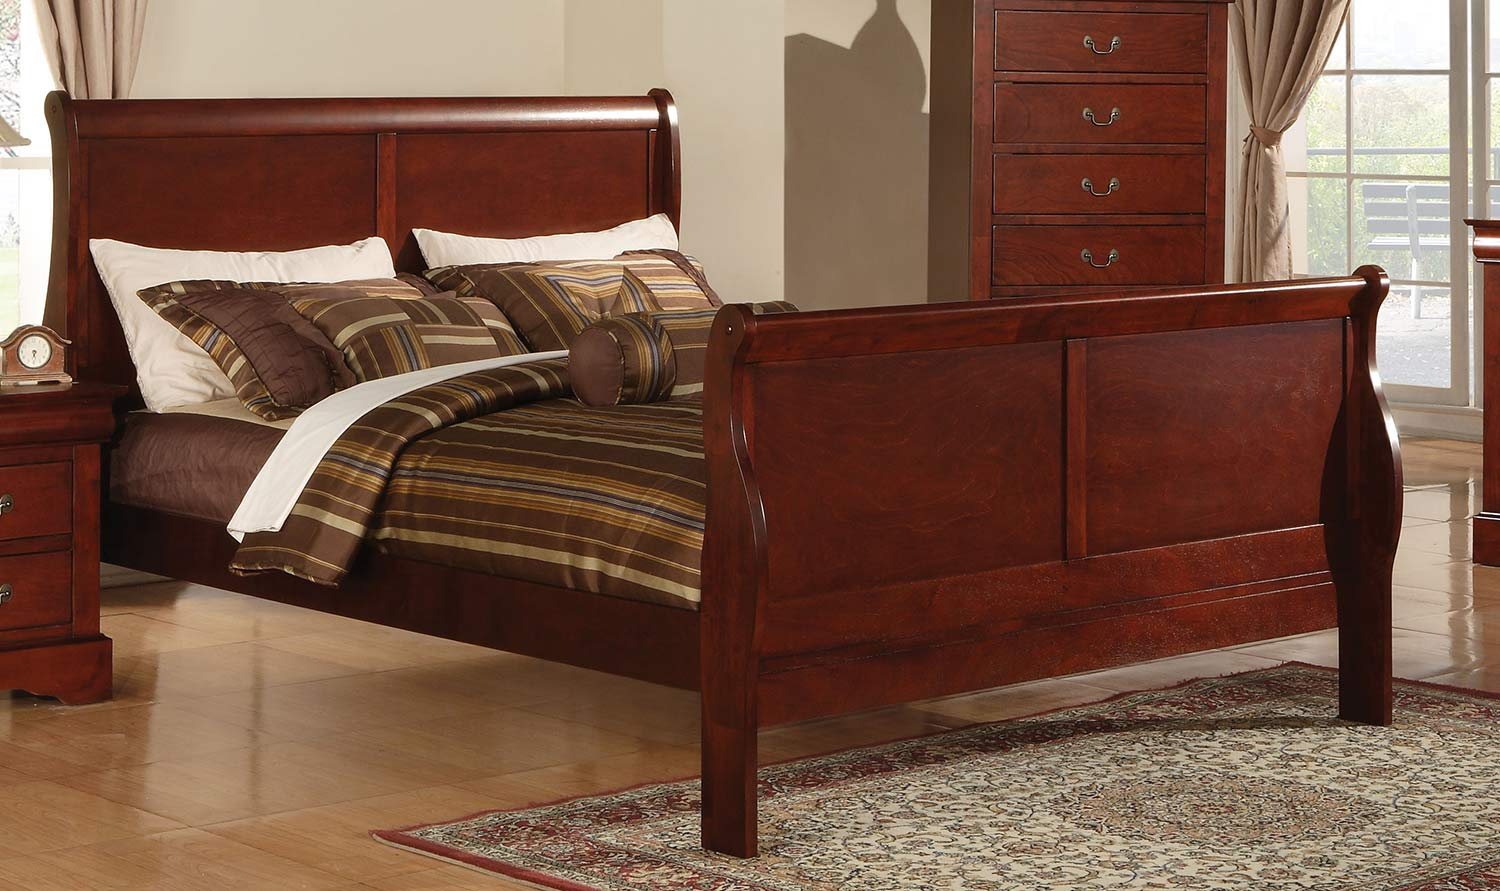 Acme Louis Philippe III Bed - Cherry